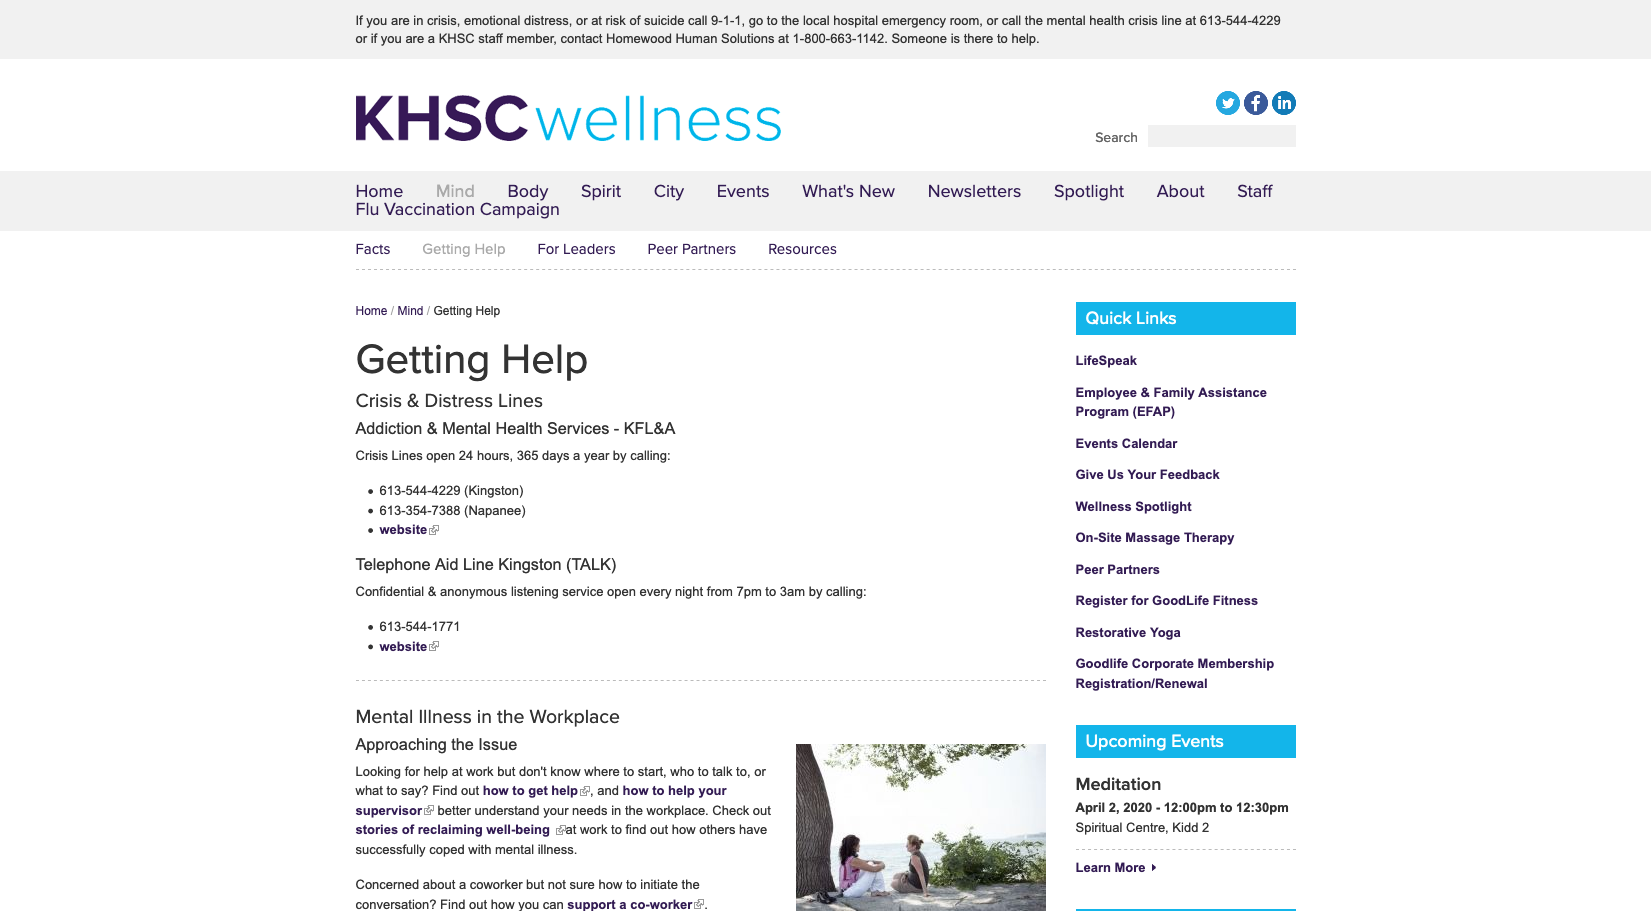 KHSC Wellness - Livespeak, Mental Illness in the Workplace